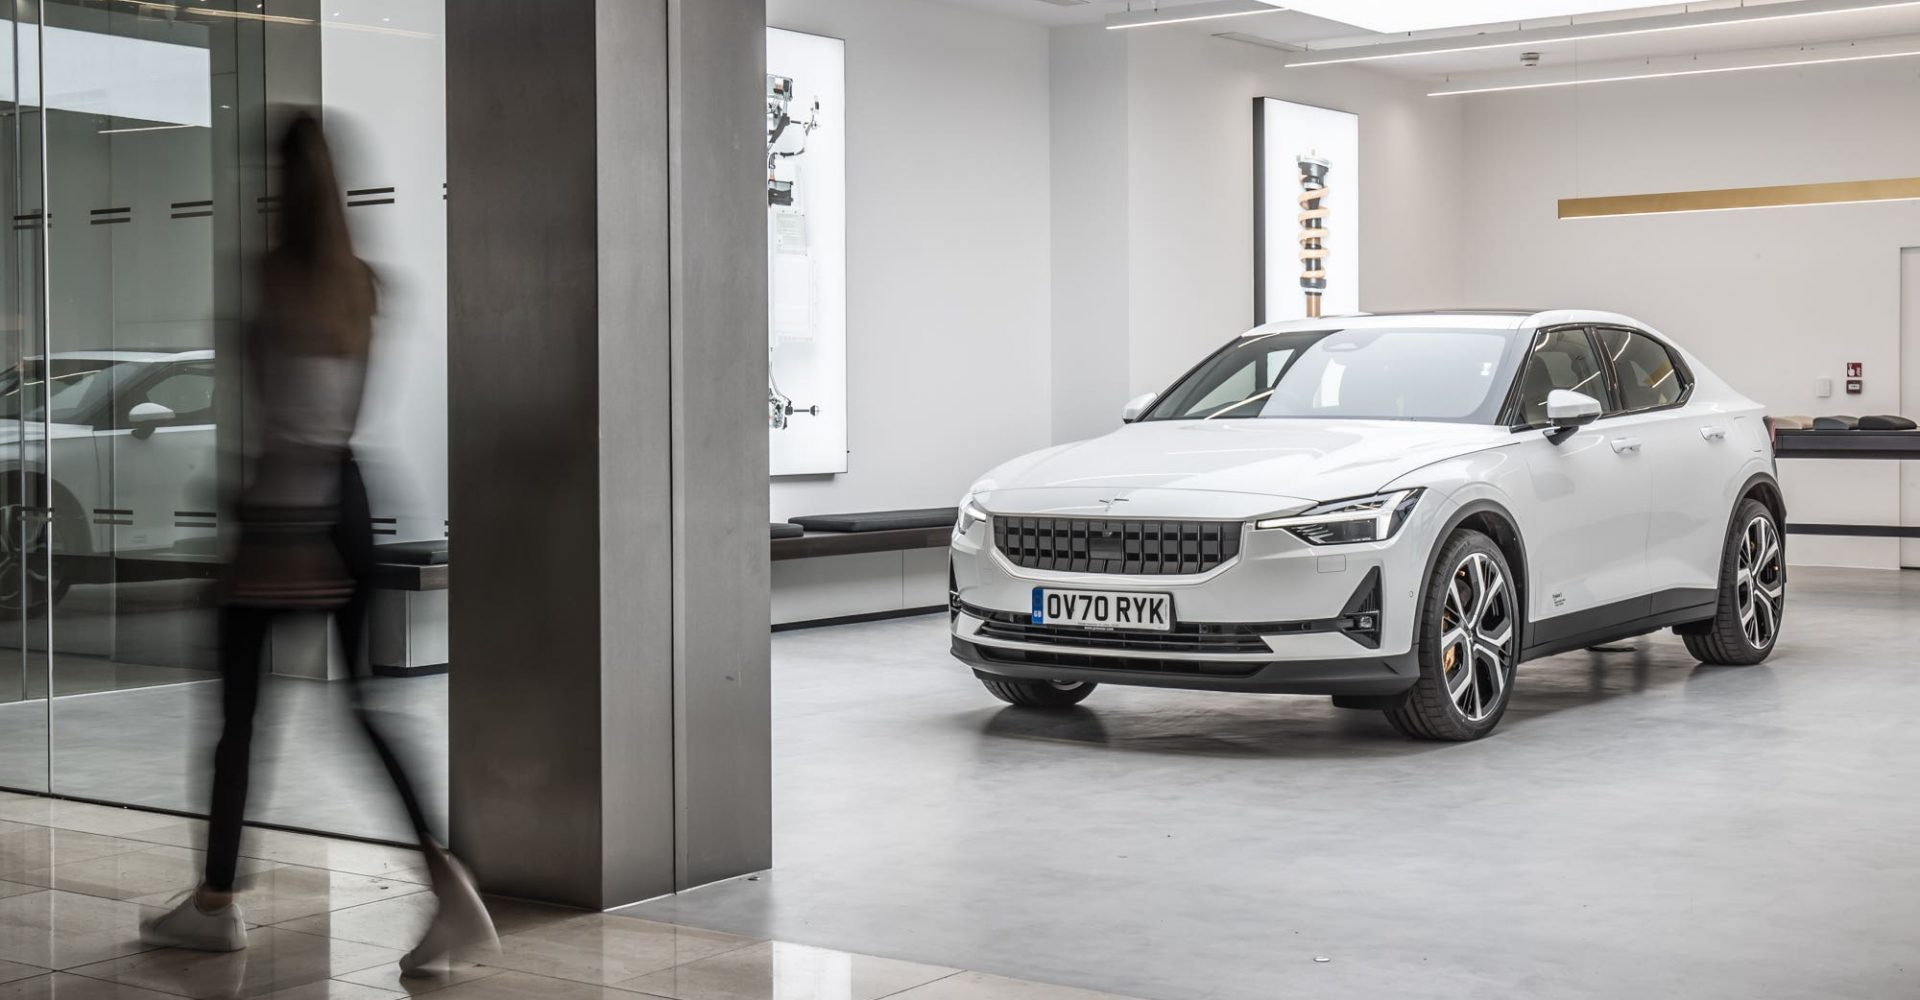 Polestar 'Space' opens in Westfield London to shake up traditional dealer model